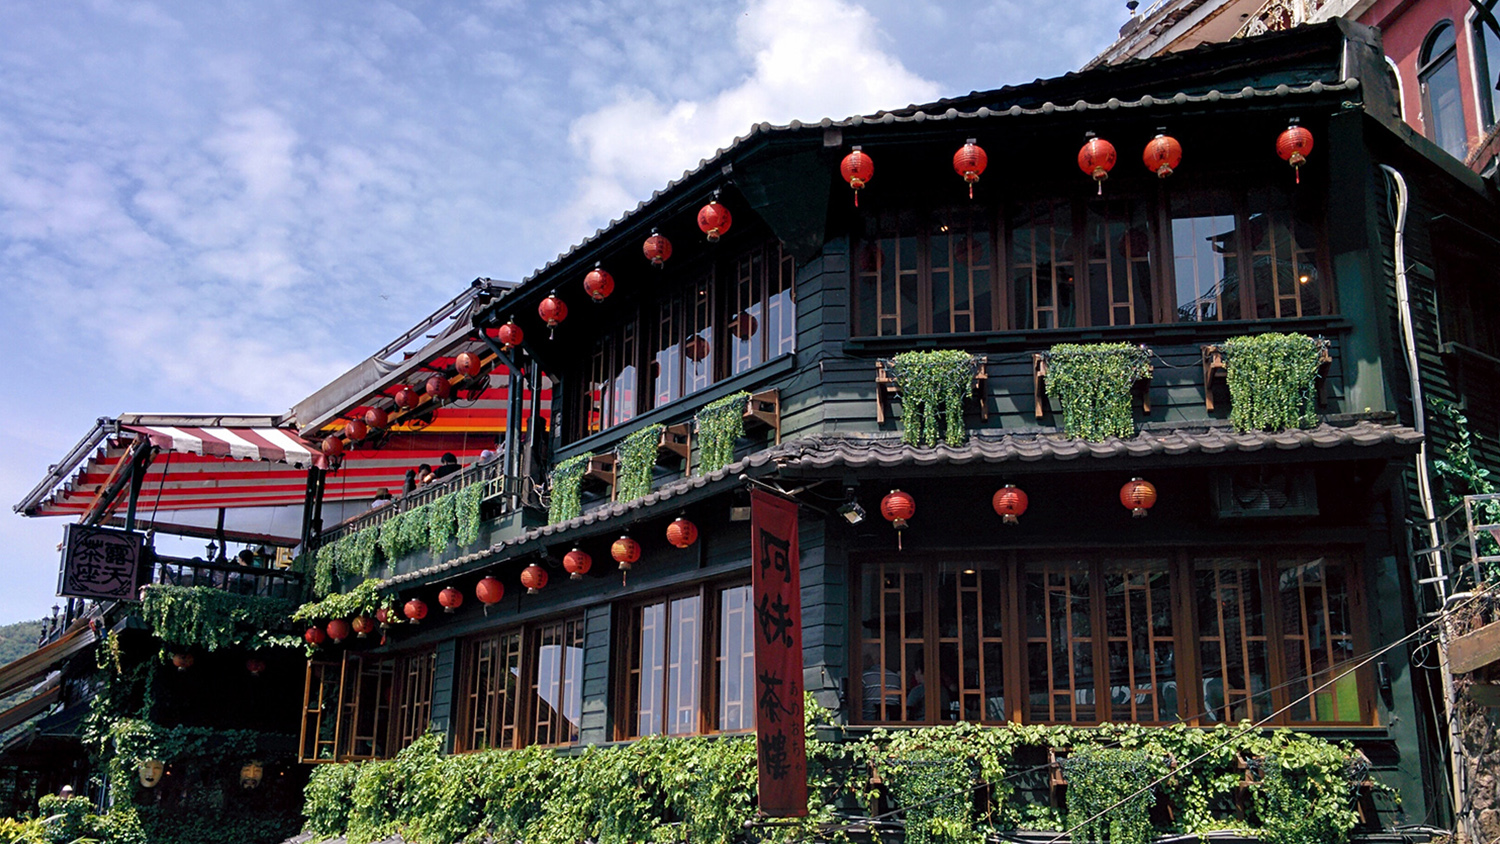 jiufen-teahouse-red-lanterns